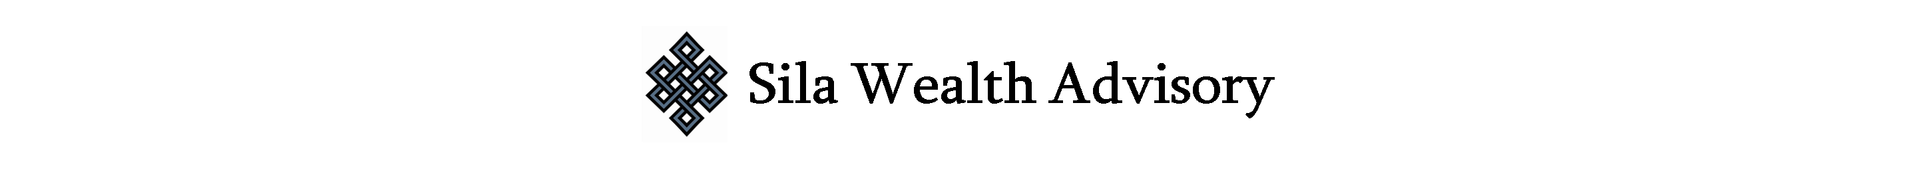 Sila Wealth Advisory